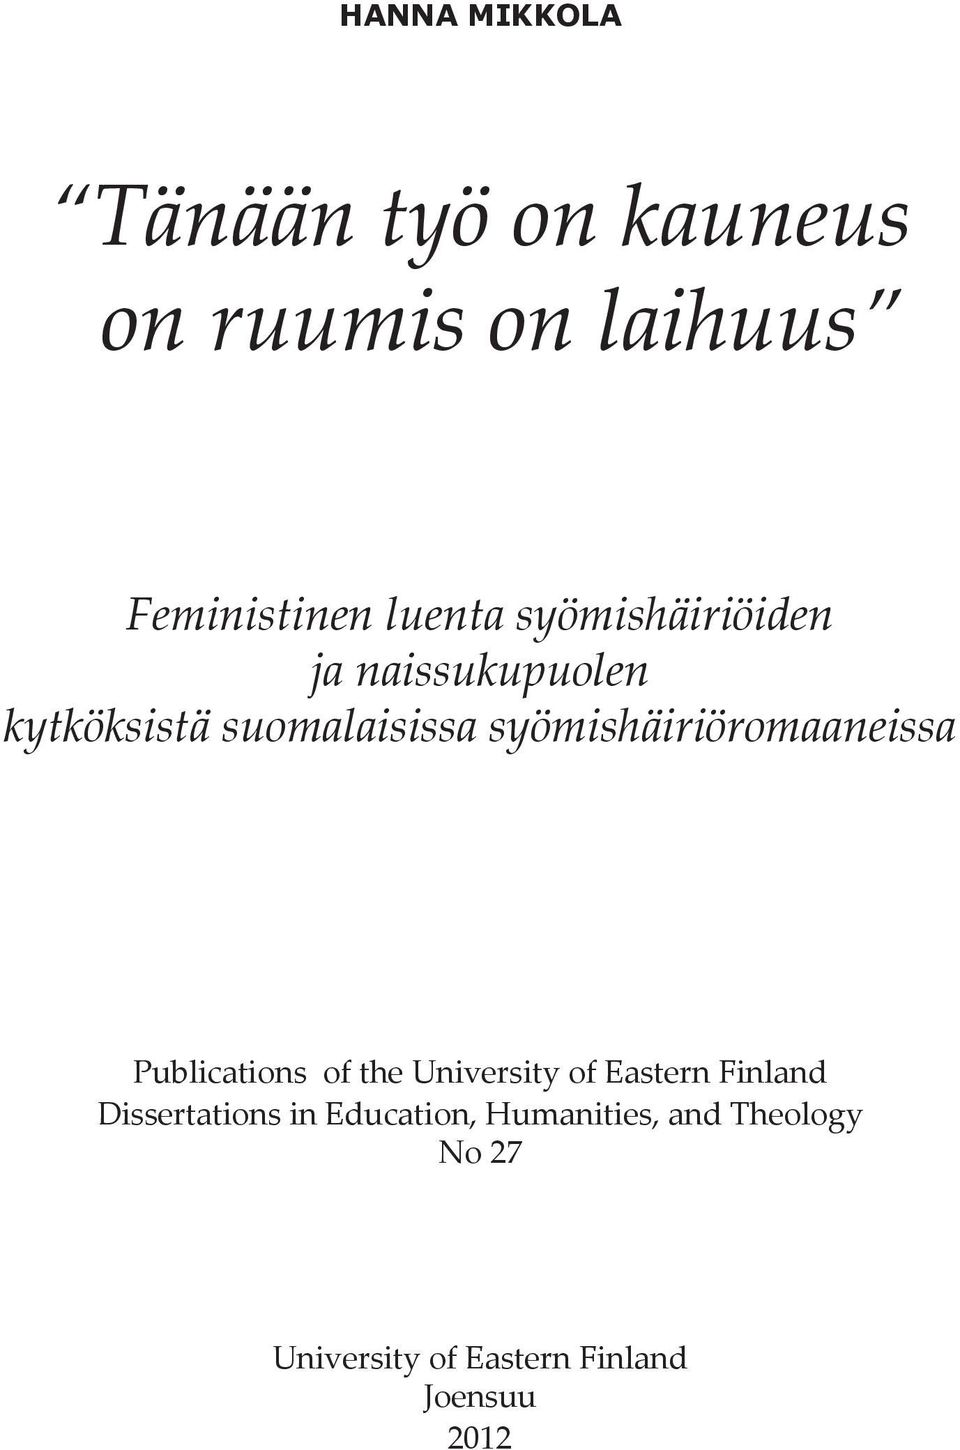 syömishäiriöromaaneissa Publications of the University of Eastern Finland